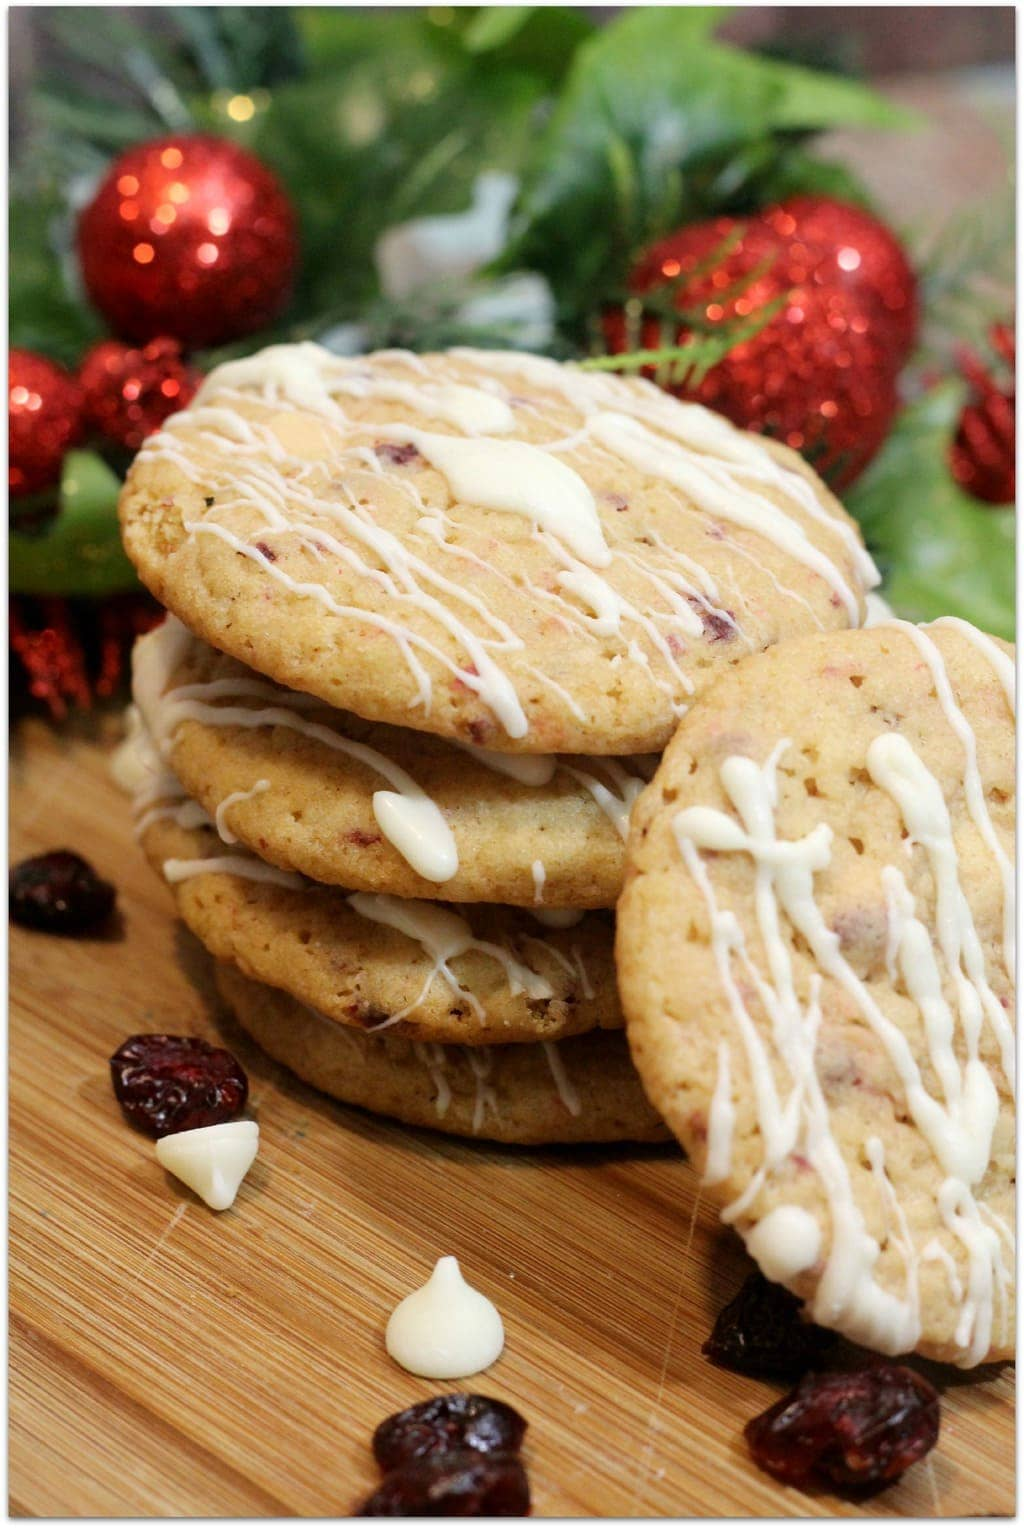 This recipe for Cranberry Cookies with White Chocolate Drizzle is such a great treat for Christmas because it's a little bit different. Cranberries and white chocolate go so well together! I have dozens of recipes for Christmas desserts, but this is one of my favorites. When you are asked to bring food to a party, this will be a huge hit! It even makes a great gift idea! I love DIY gifts of desserts because they are personal and save me money!